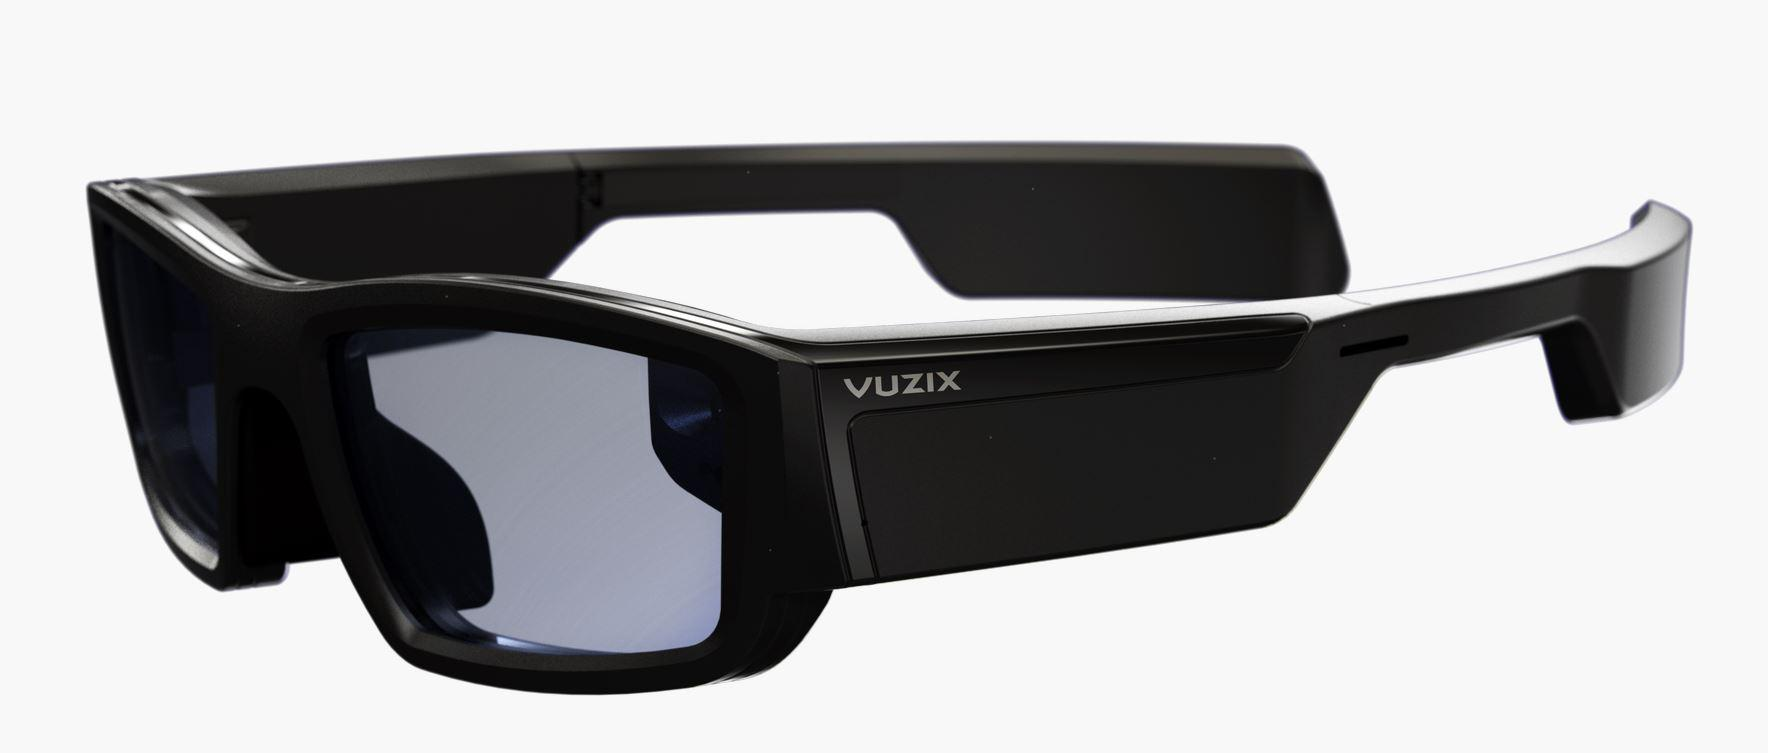 """Vuzix, founded in 1997, may have built a pair of augmented reality glasses that can finally help bring the technology to the masses."""